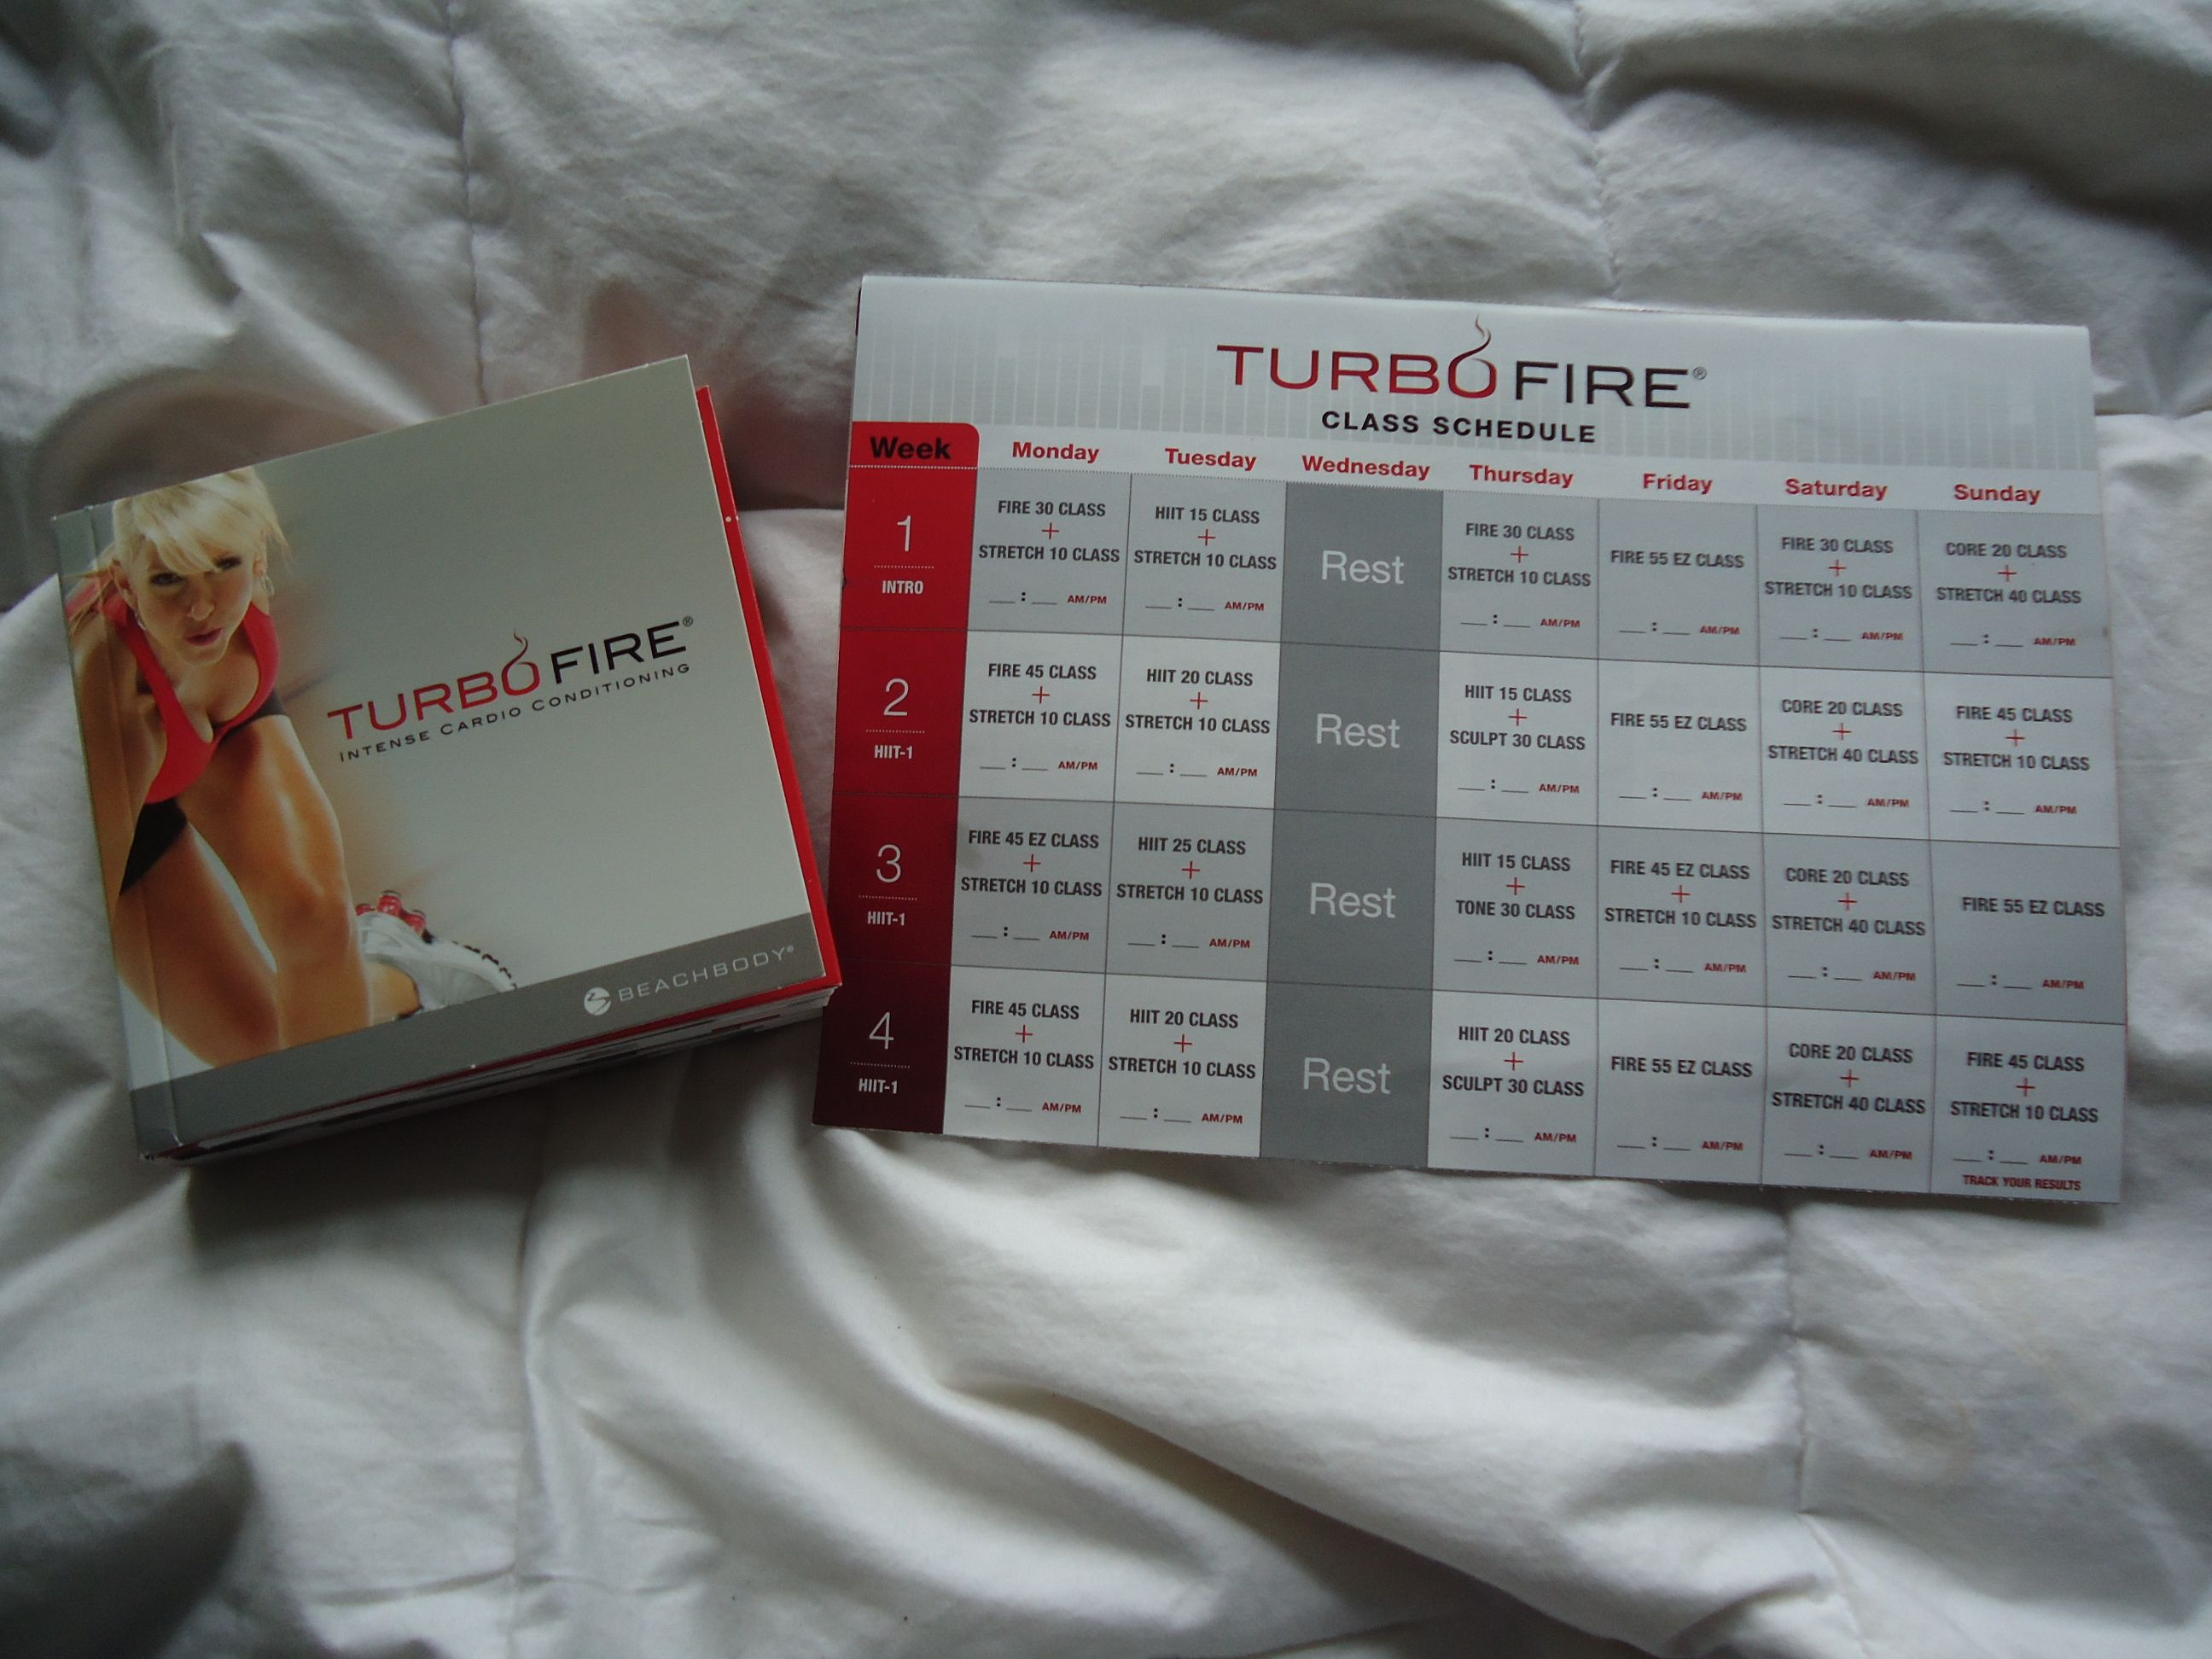 Turbo Fire Schedule Week 1 4 Started with turbofire and